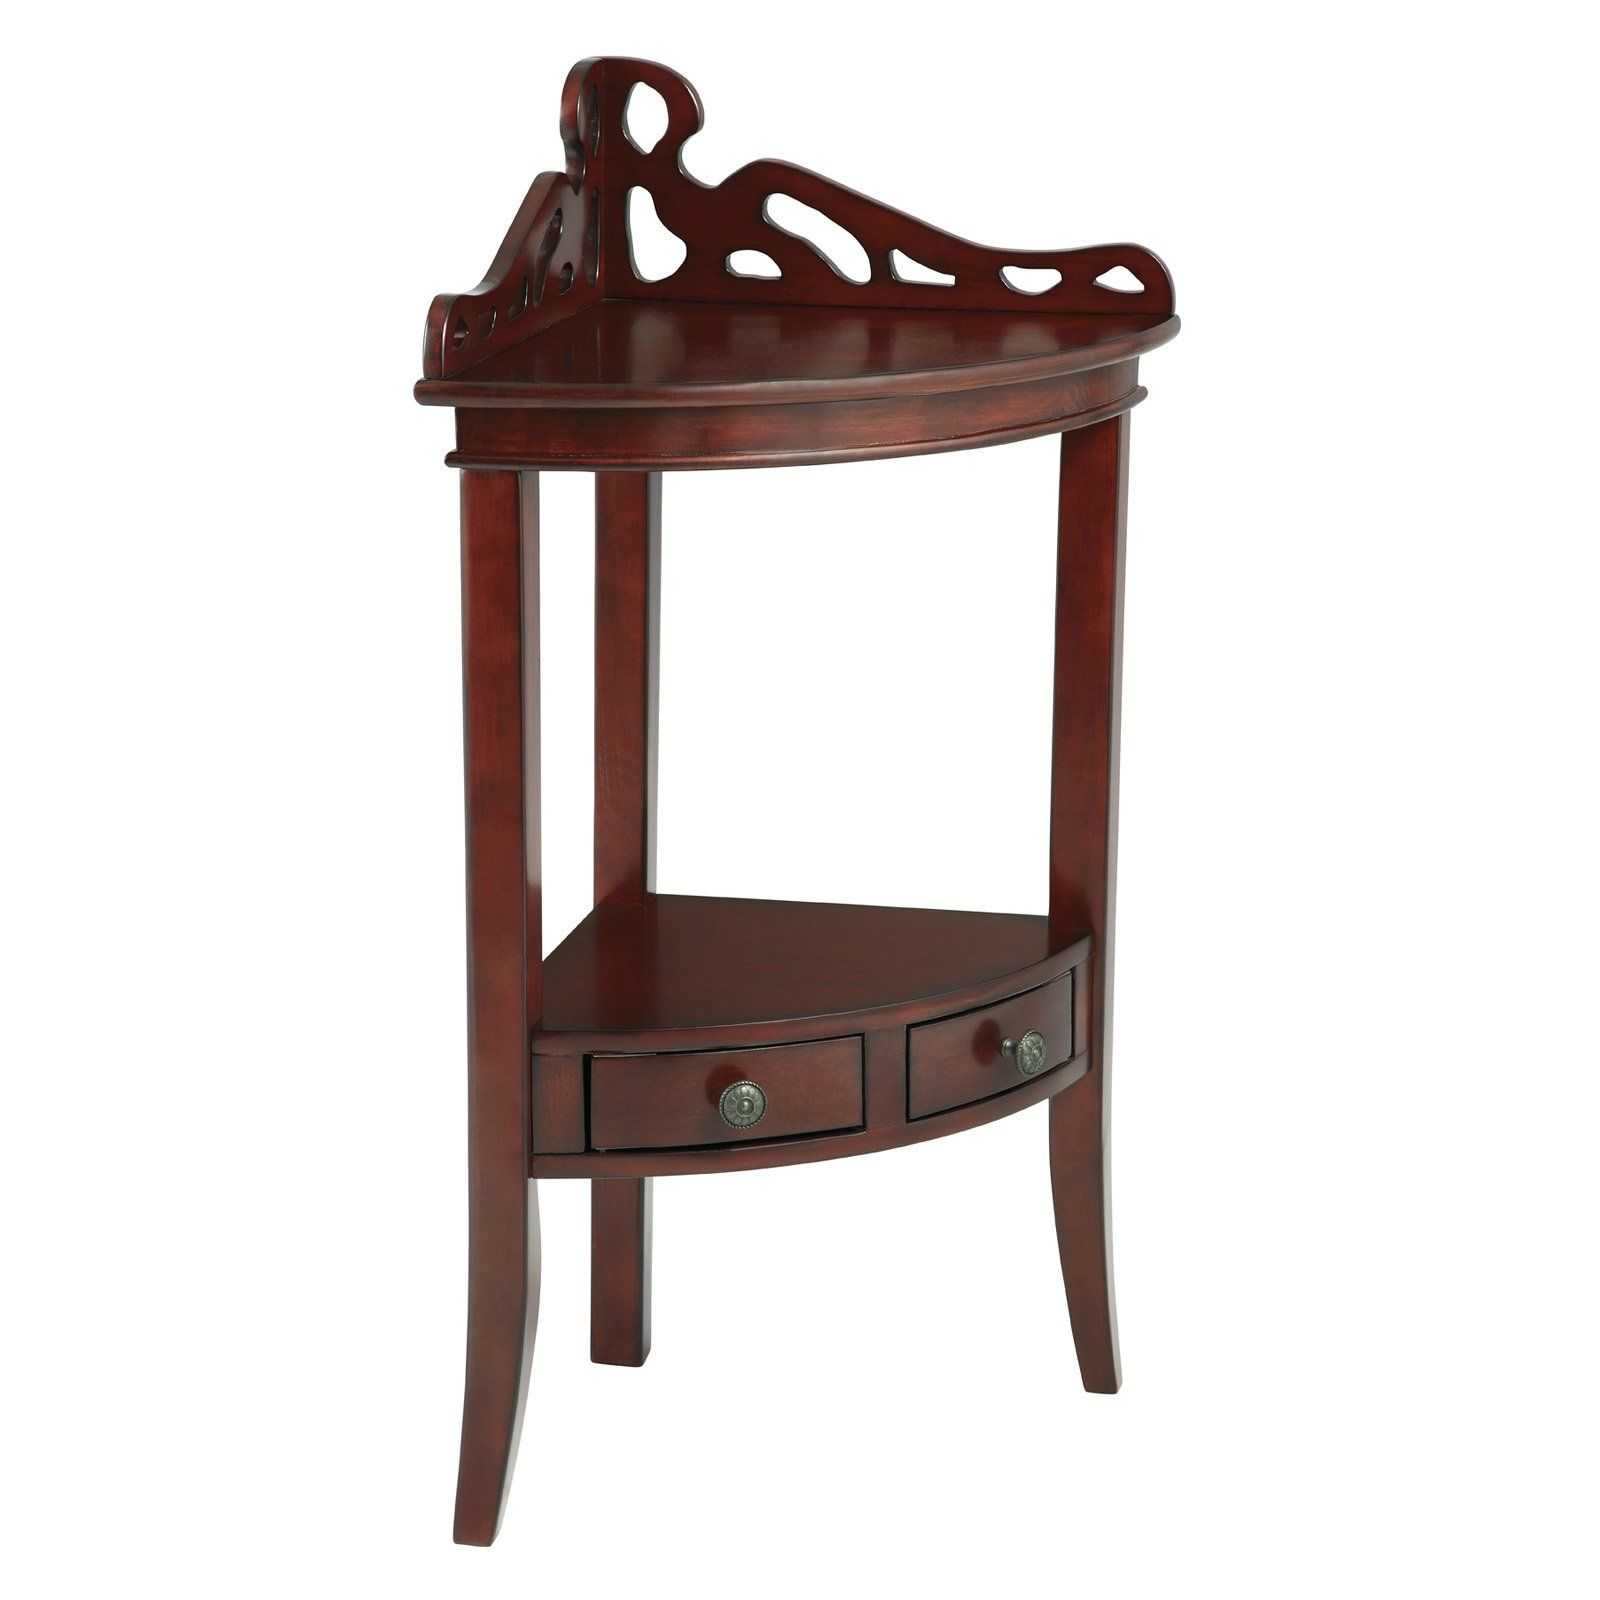 Powell bombay collection gallery corner accent table from powell bombay collection gallery corner accent table from hayneedle watchthetrailerfo